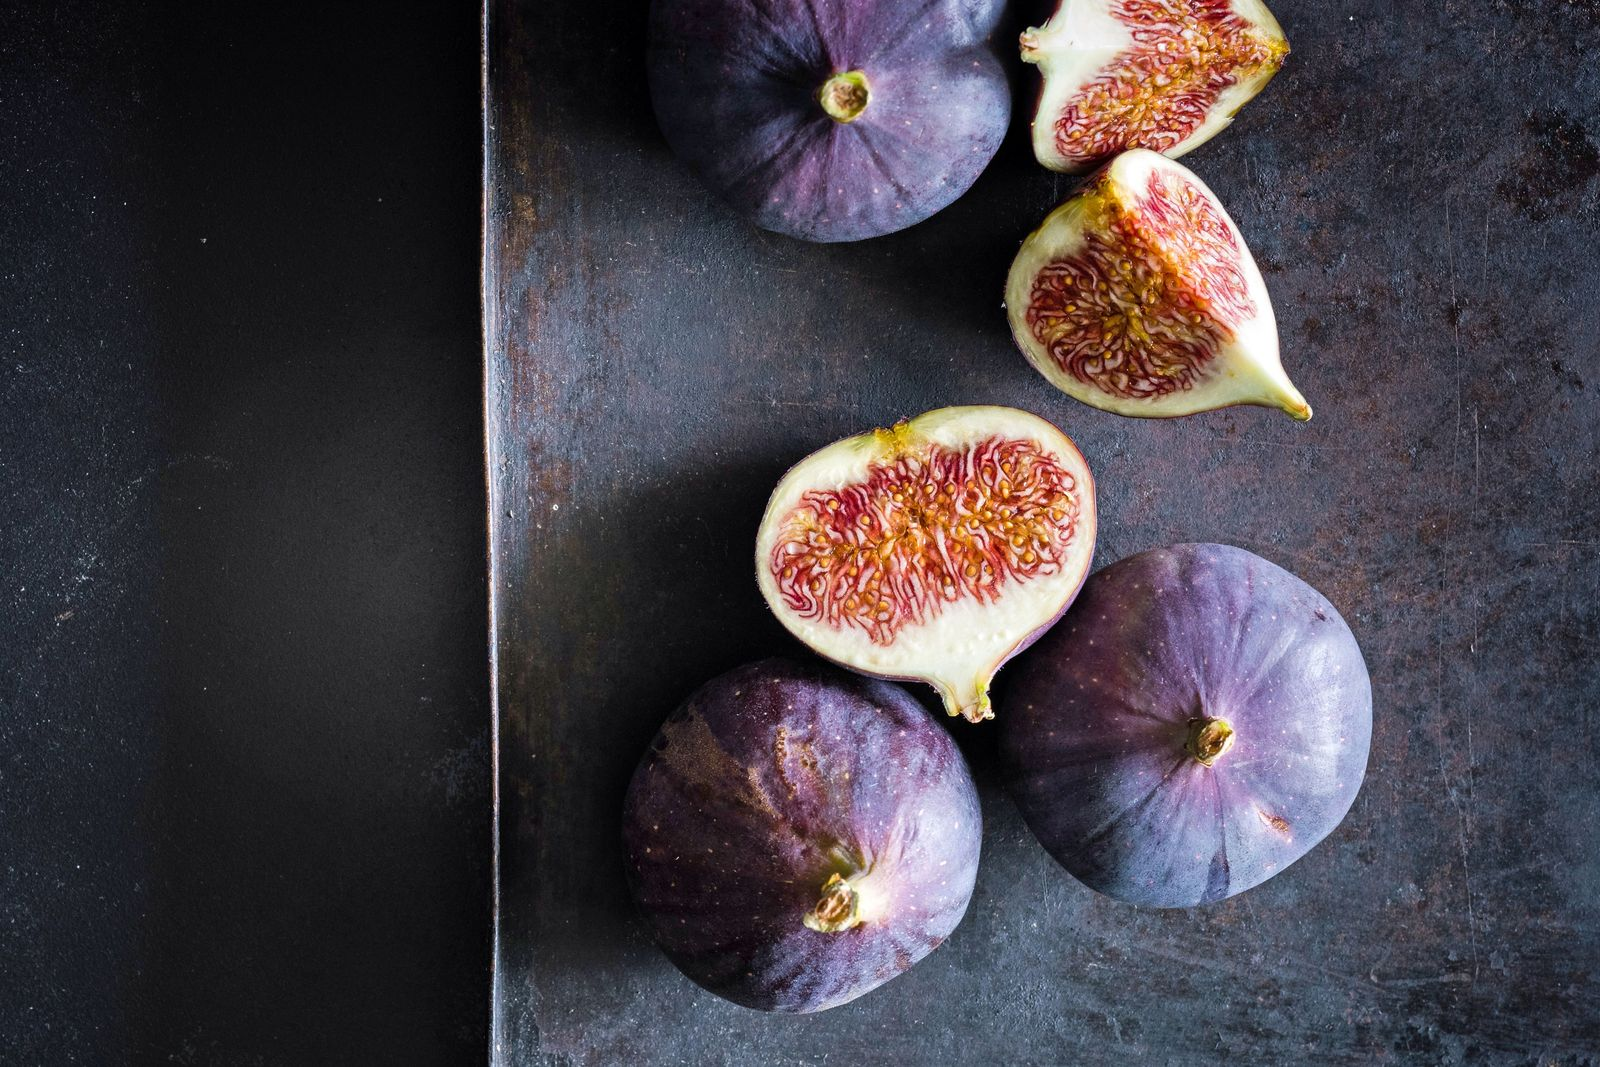 Five ways to use figs, by the renowned chefs at Honey & Co